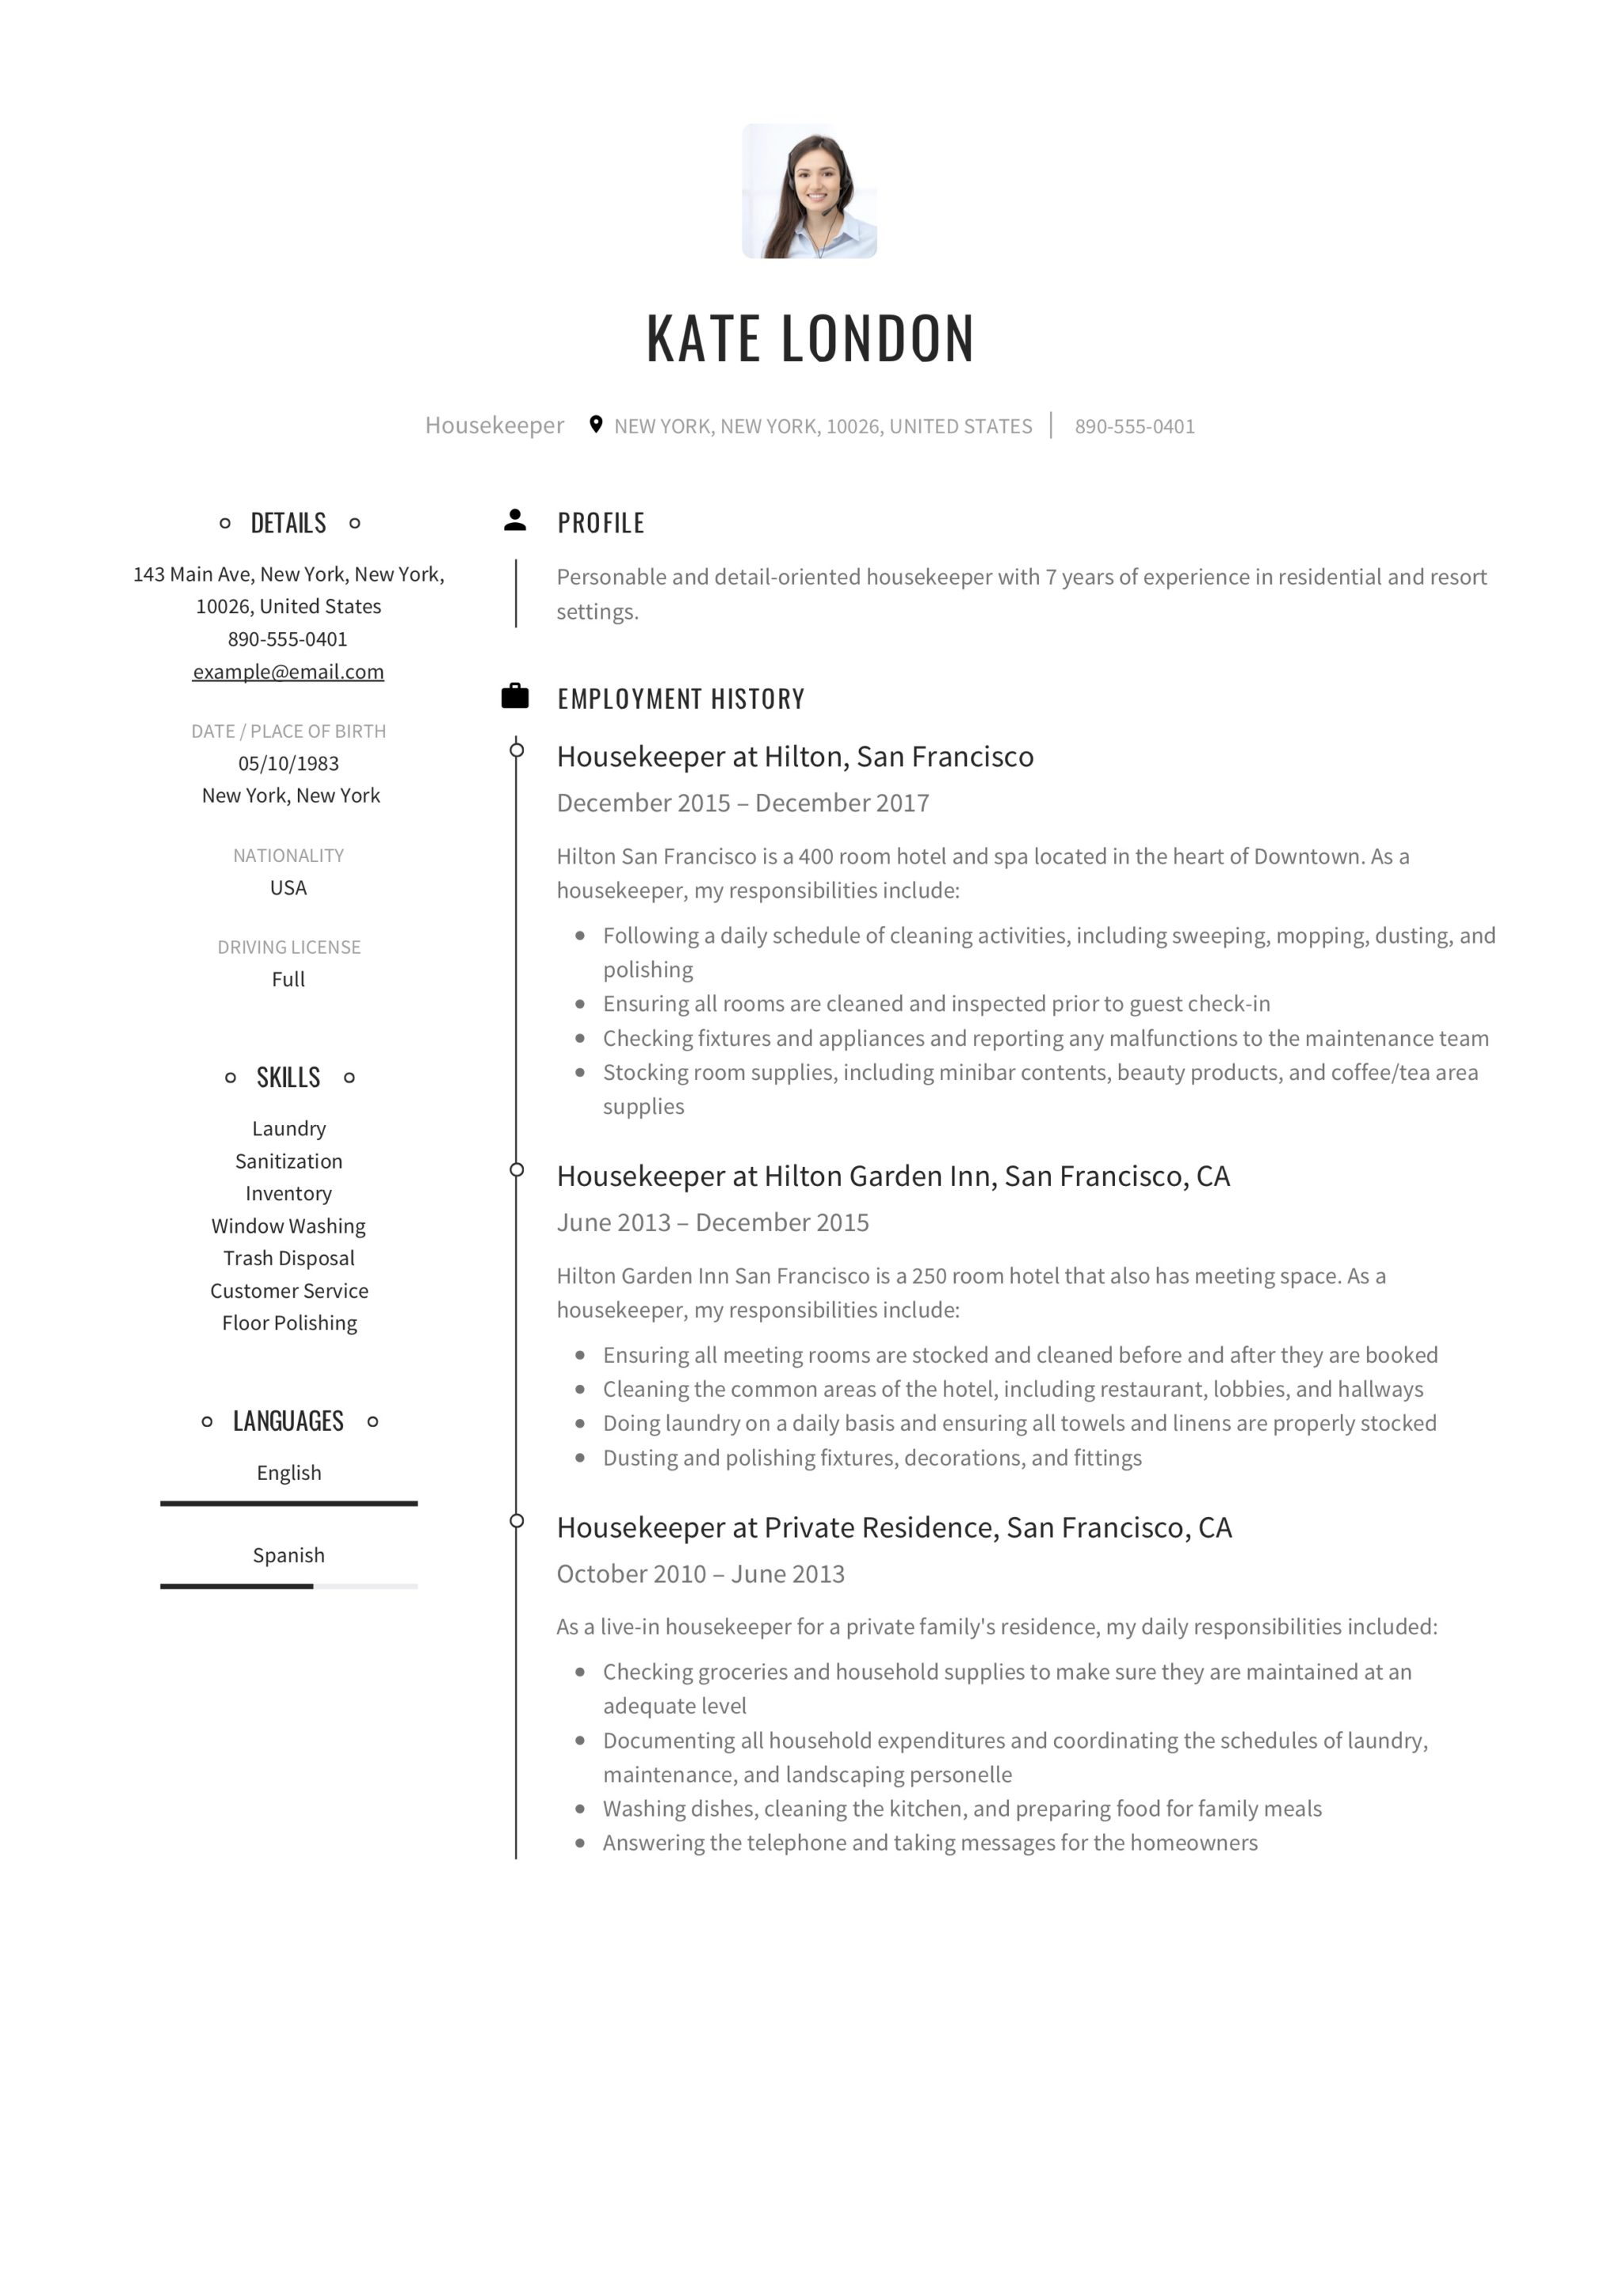 Housekeeping Resume Example Guide Housekpeer Resume 12 Samples Pdf Word 2019